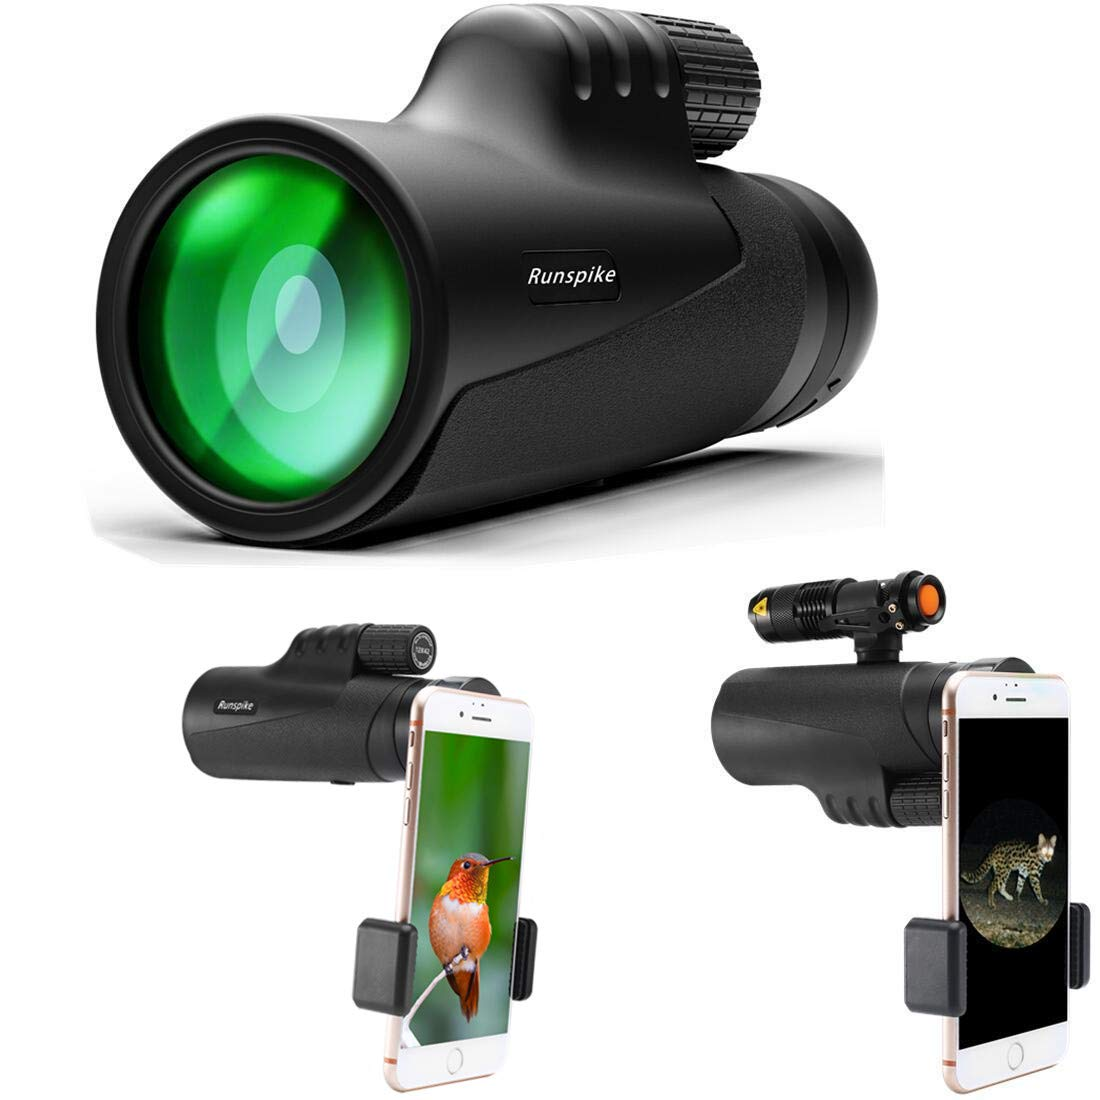 Monocular Telescope, 12X42 High Power Prism Monocular Focus Waterproof Spotting Scopes, Night Vision with Smartphone Holder and Fill Light- BAK4 Prism FMC for Bird Watching Hunting Camping Travelling by RUNSPIKE